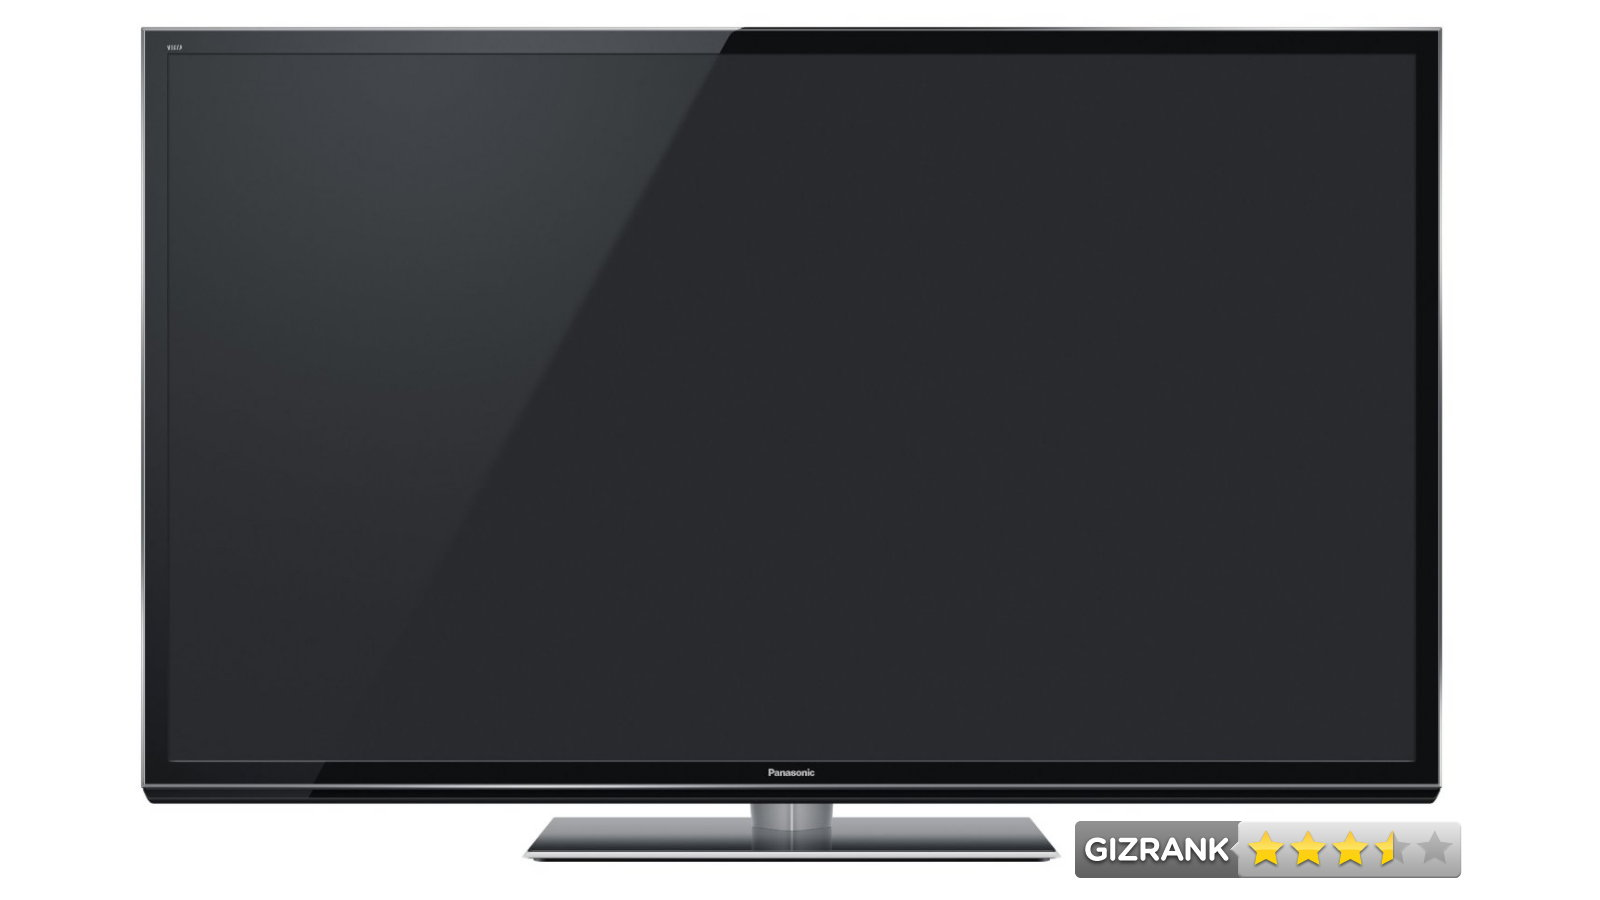 panasonic st50 plasma 3dtv review good picture great value gizmodo australia. Black Bedroom Furniture Sets. Home Design Ideas